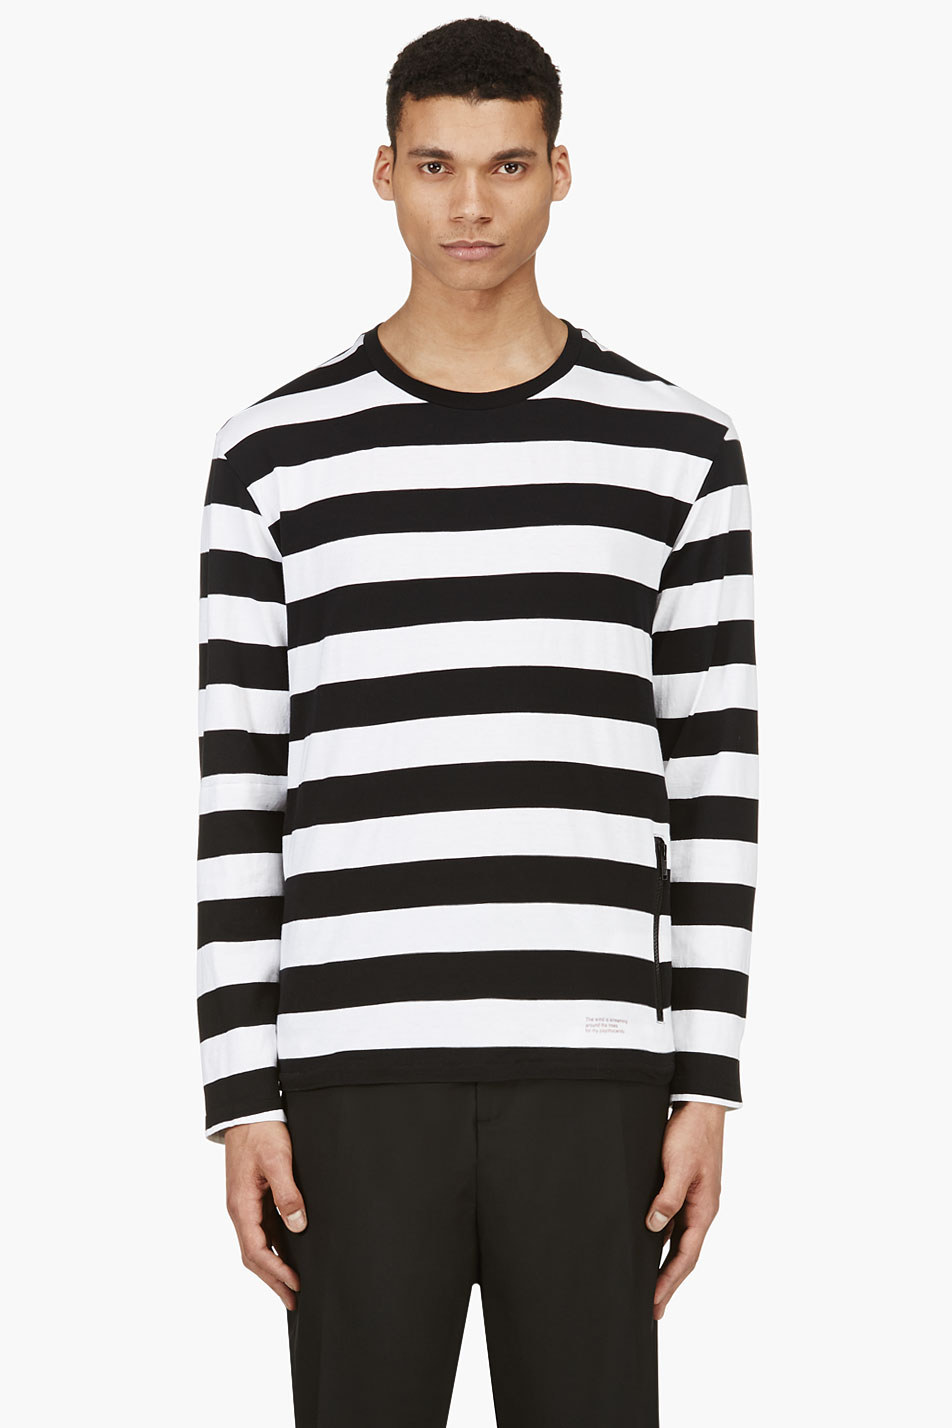 Undercover black and white stripe long sleeve t shirt in Mens long sleeve white t shirt